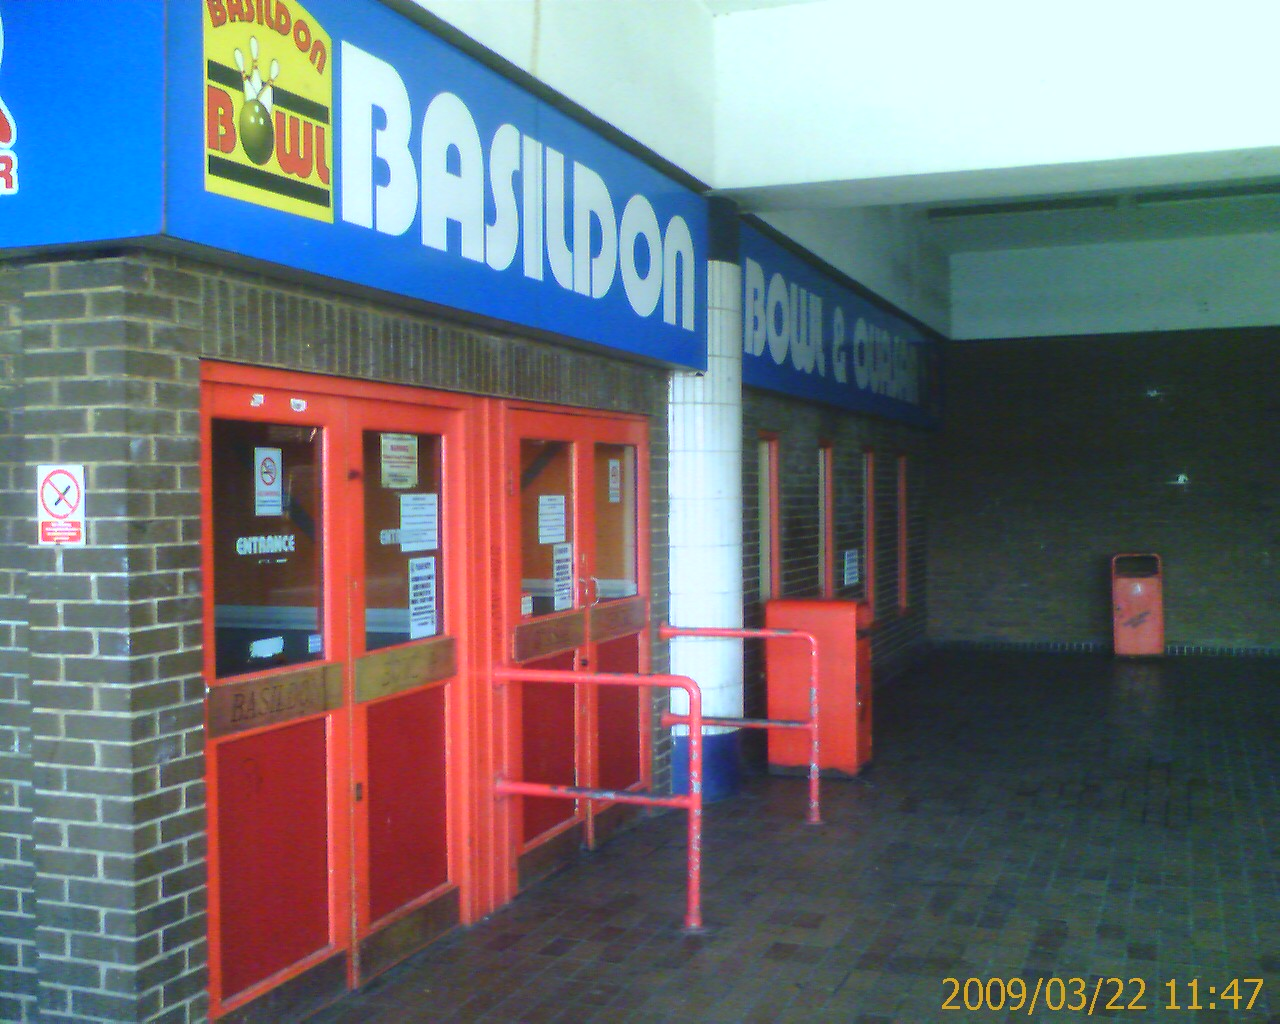 Basildon Bowl and Quasar - Entrance